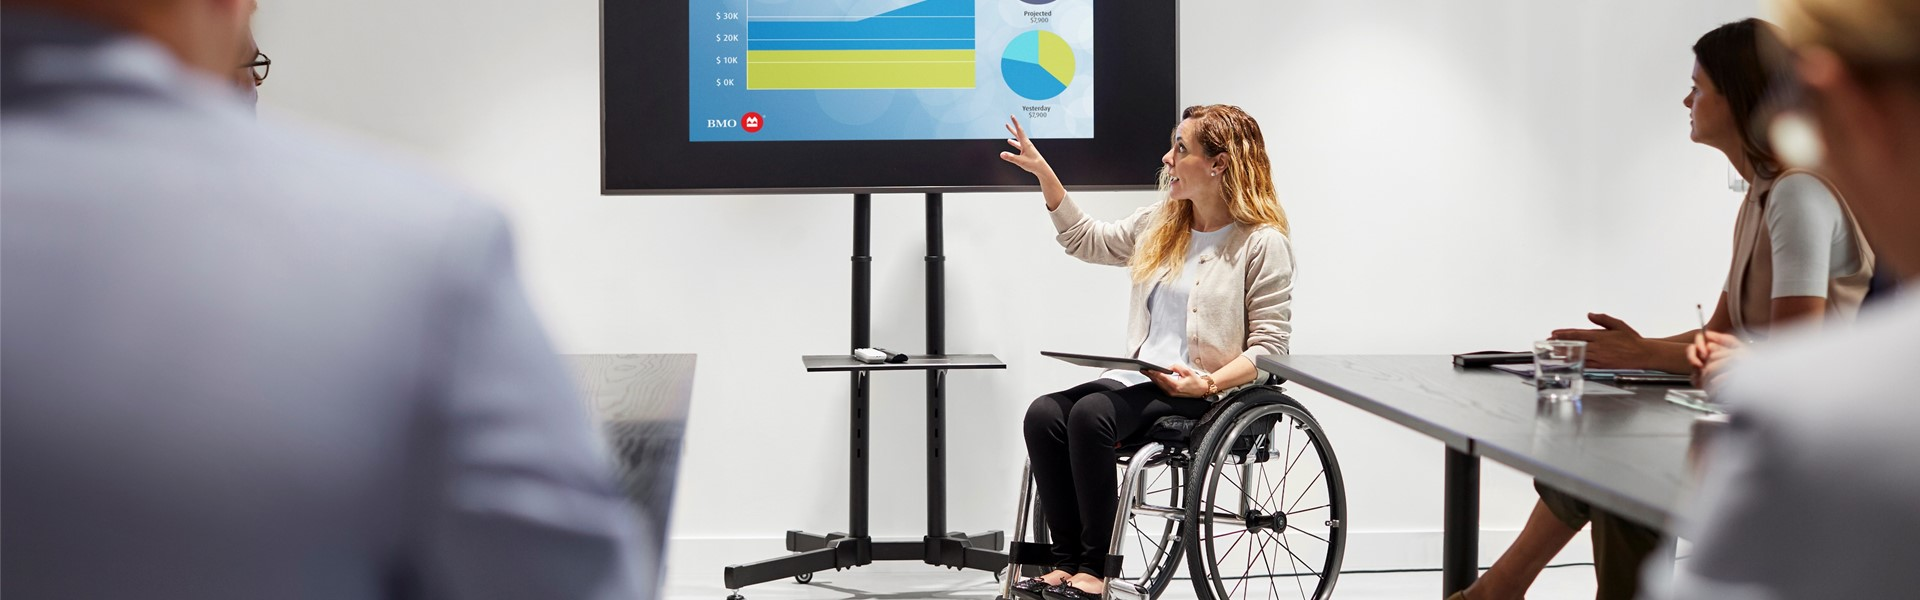 Female employee in wheelchair presenting on a large screen.